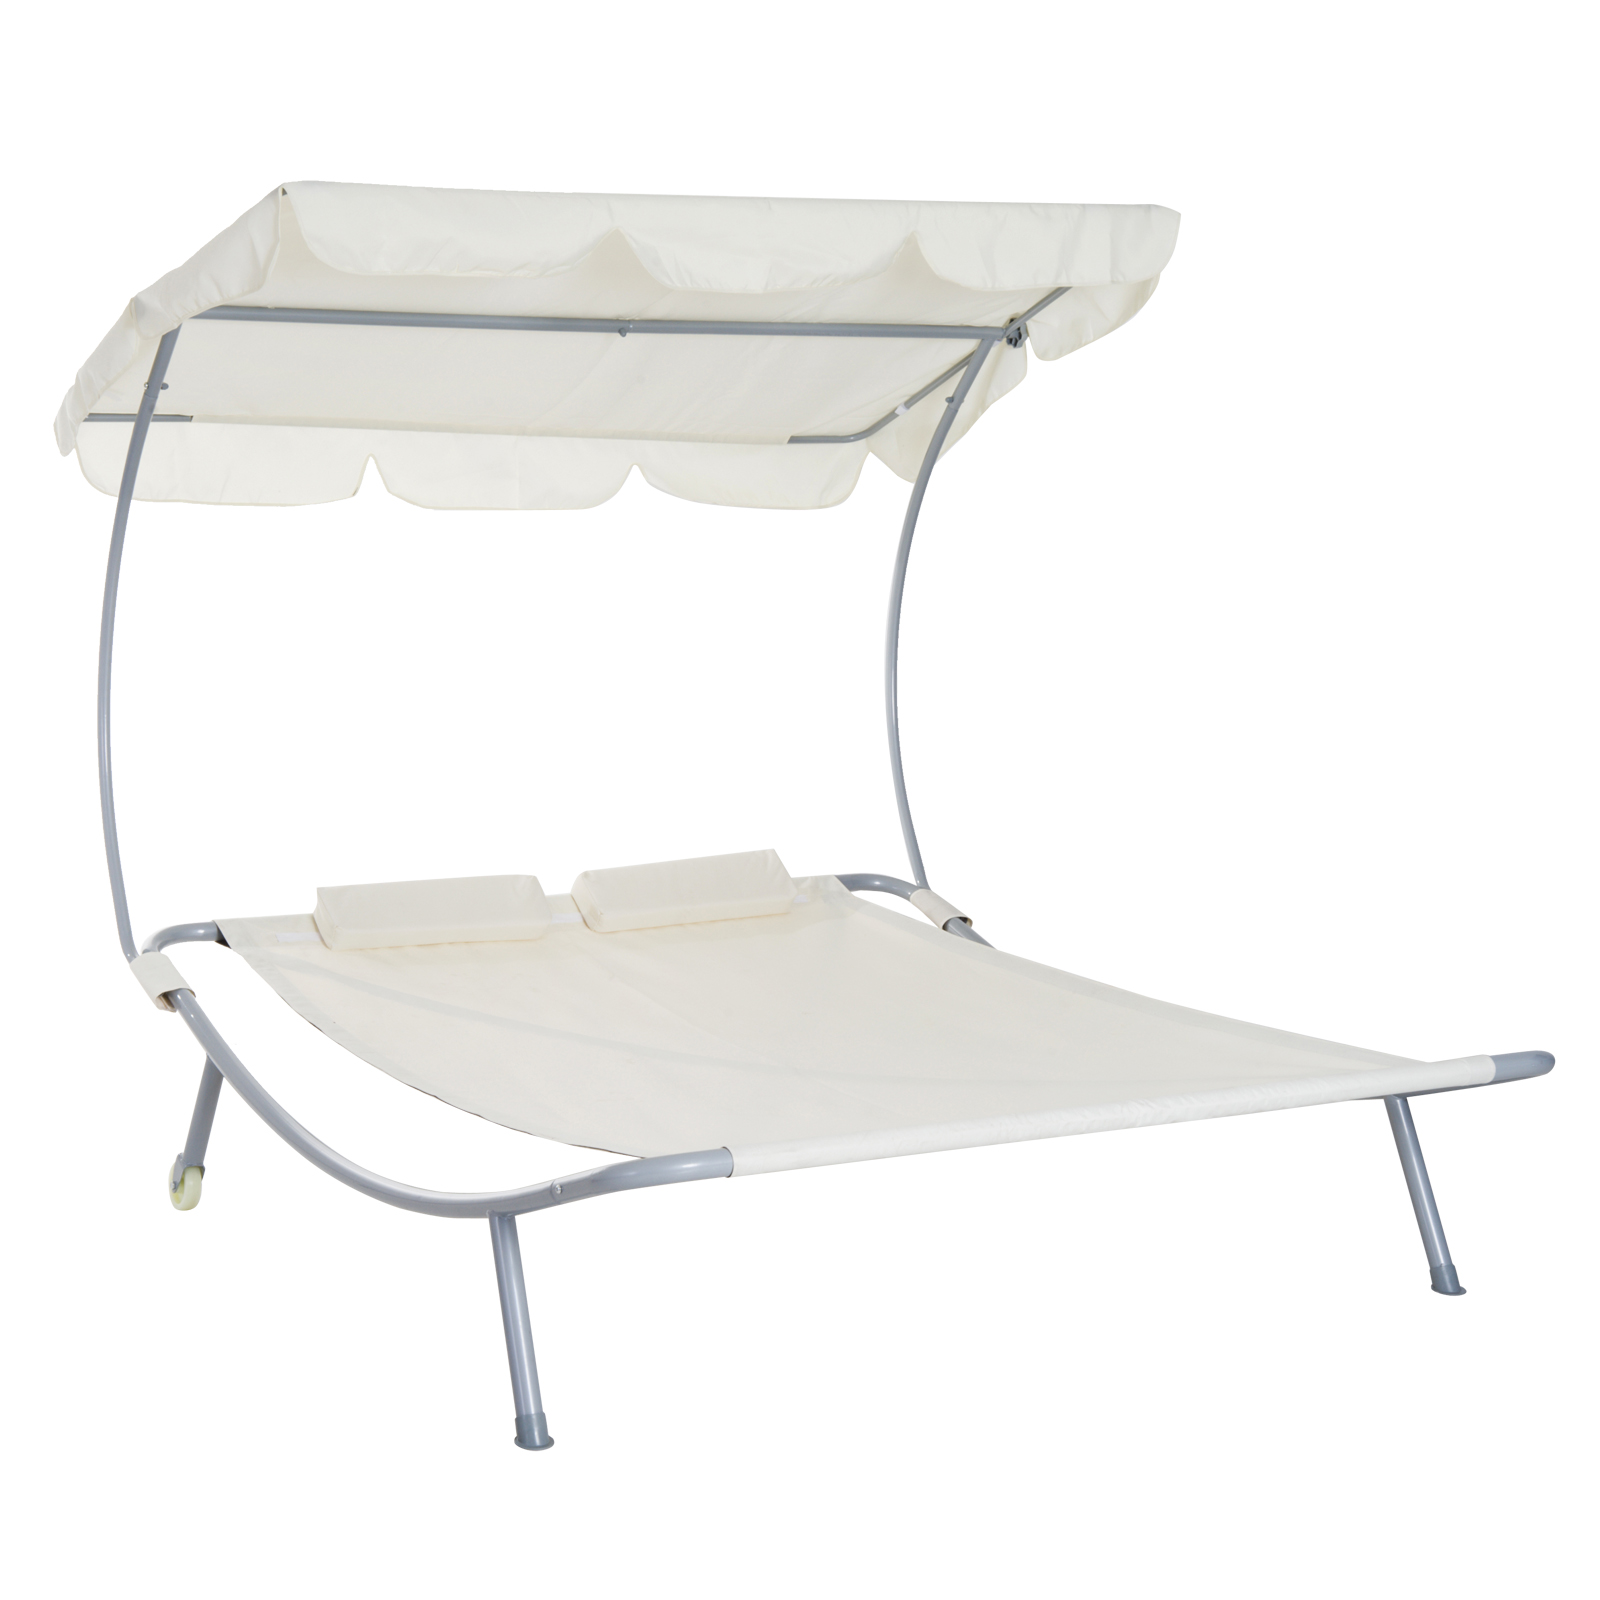 Image of £77.99 Outsunny Double Hammock Bed W/Pillows-Cream White / Sun Lounger Canopy Shelter Wheels 2 Pillows Patio Cream 84B-174CW 5056029888353